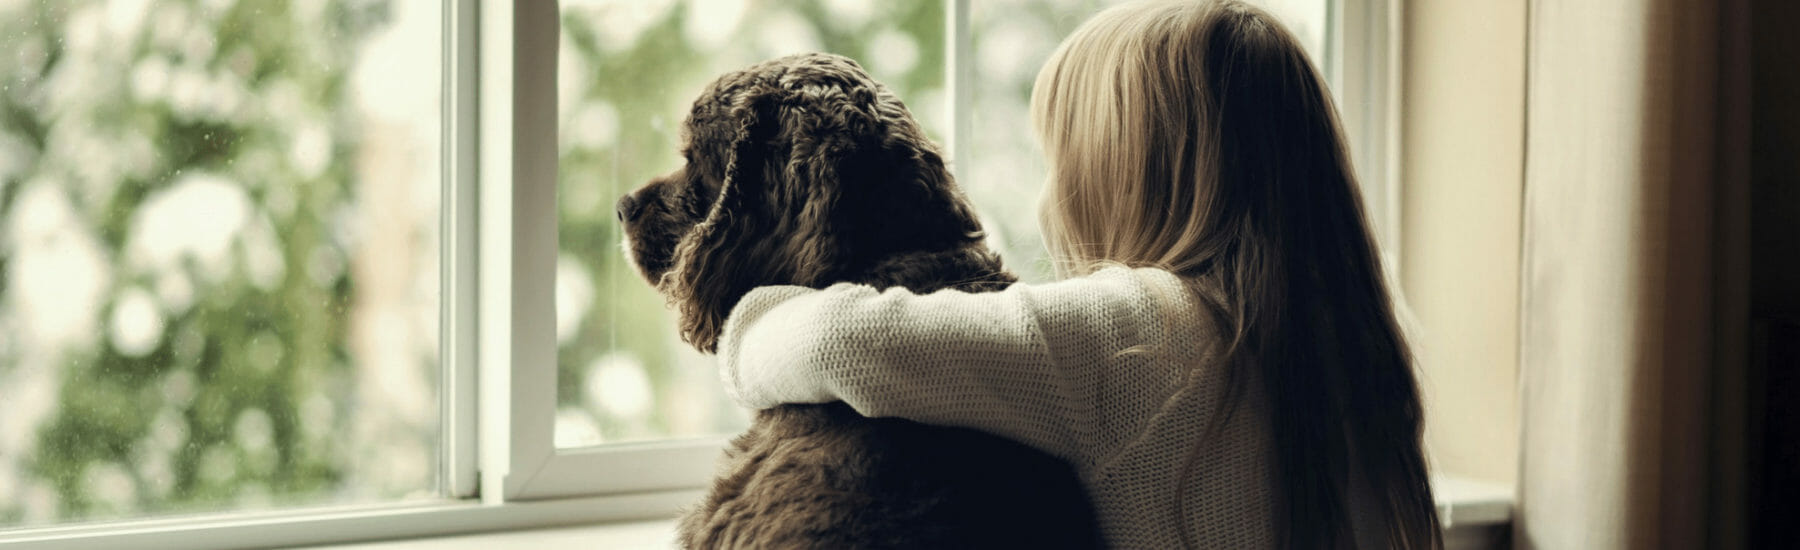 Owner and black dog looking out of the window